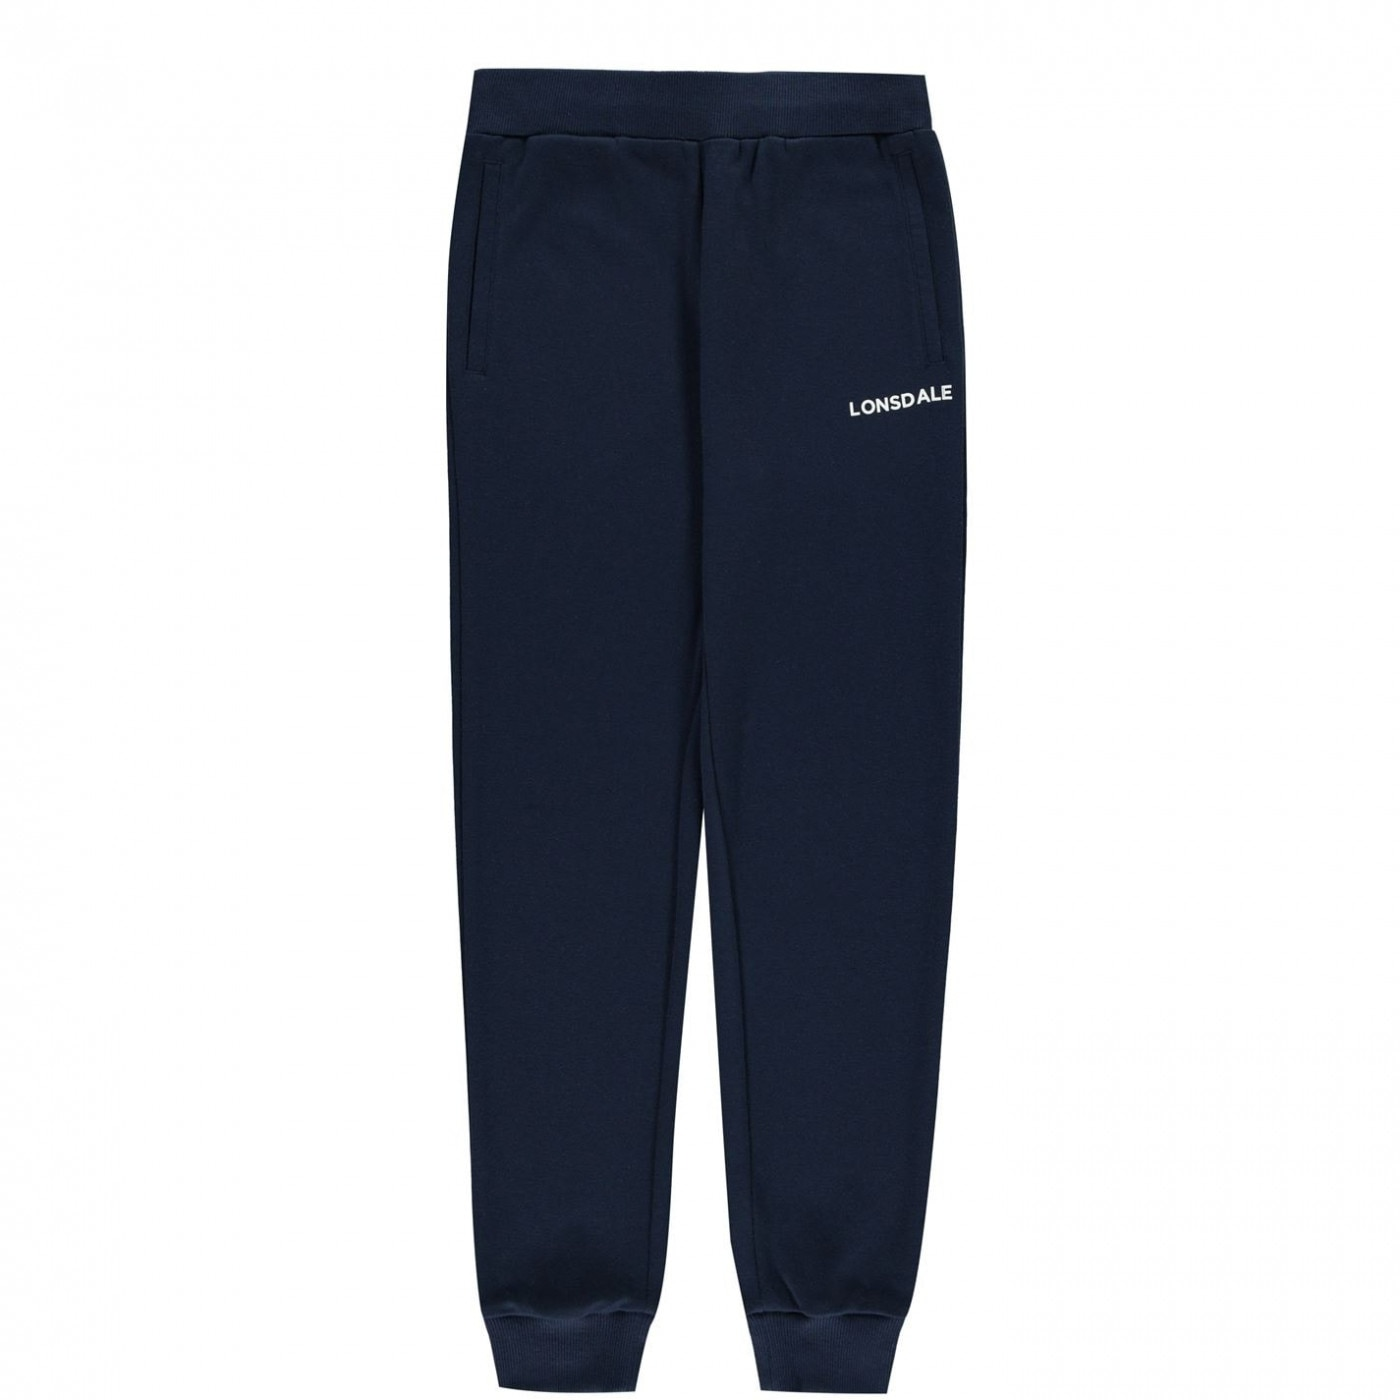 Lonsdale Jogging Bottoms Junior Girls